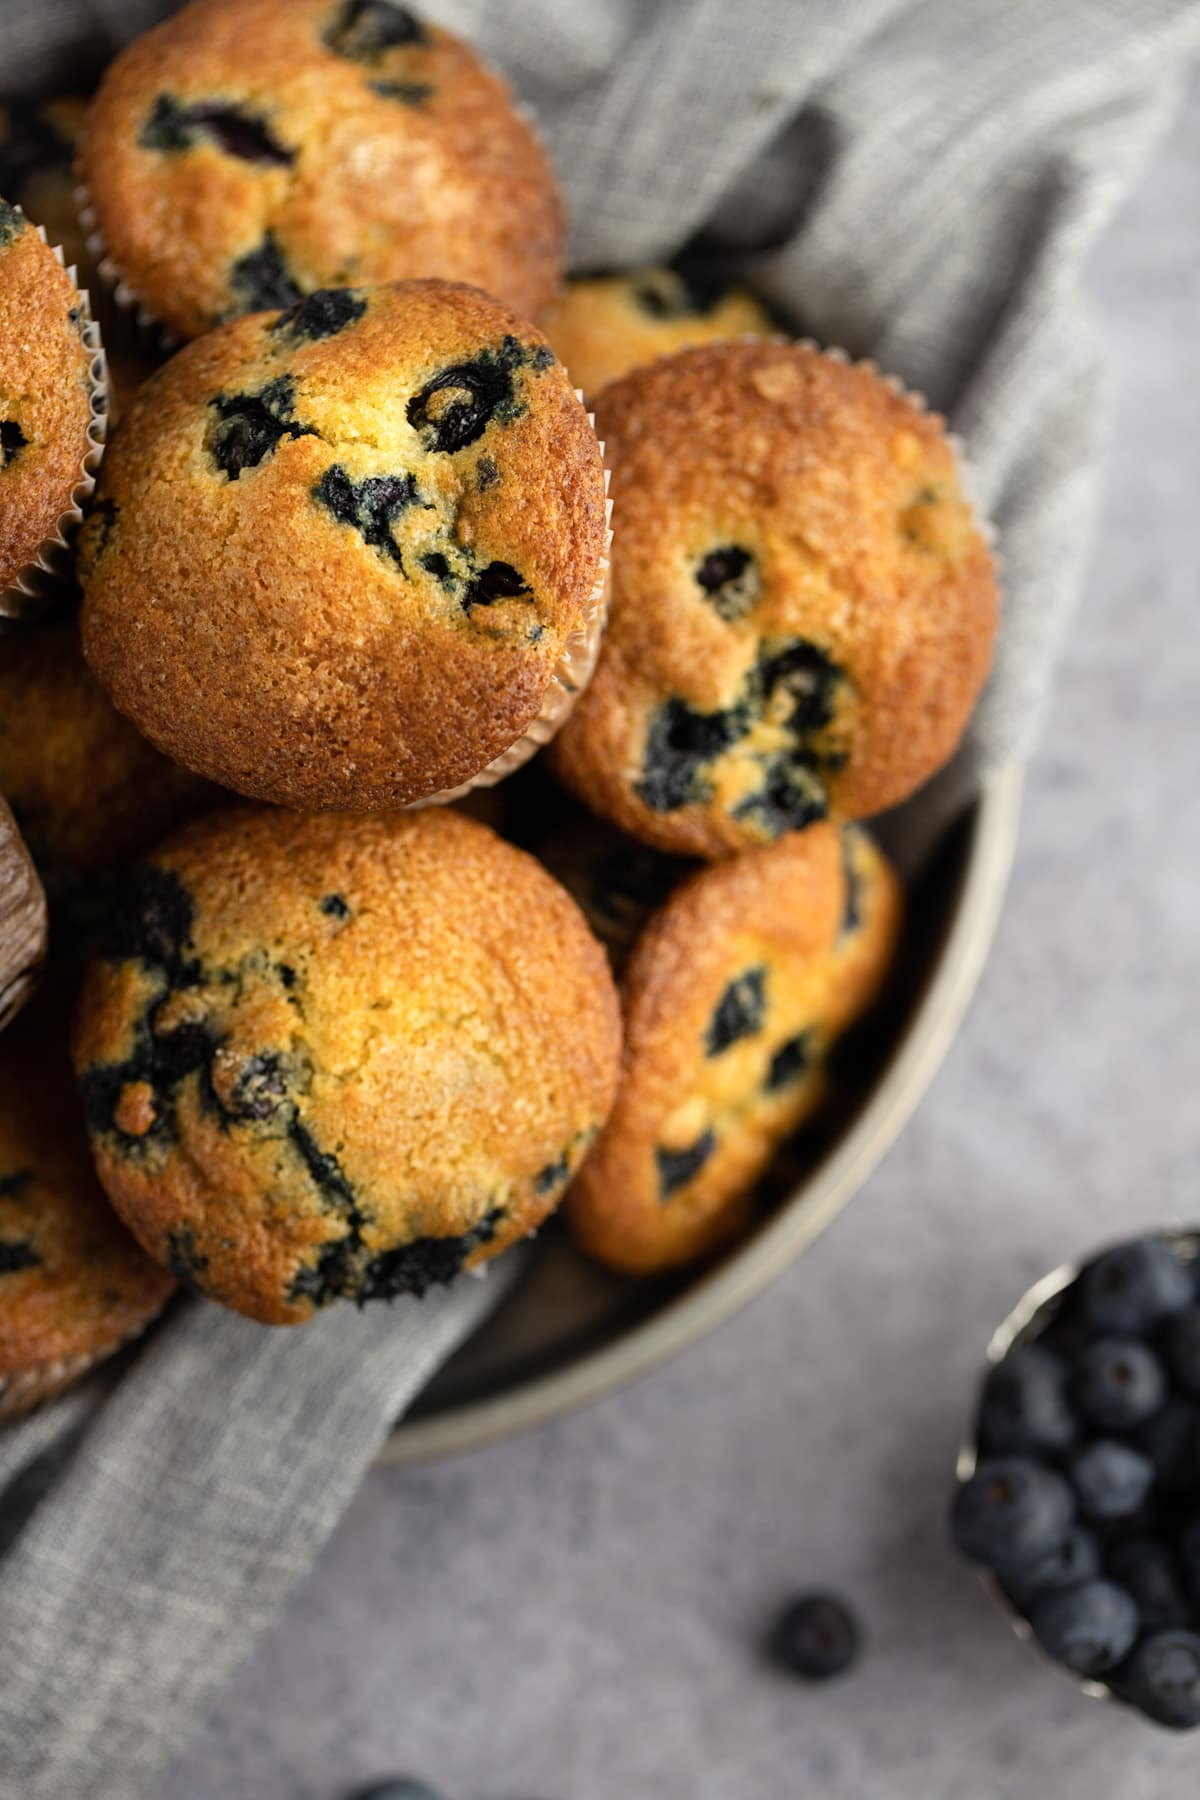 Overhead photo of crispy blueberry muffins on a grey background, with blueberries scattered around it.